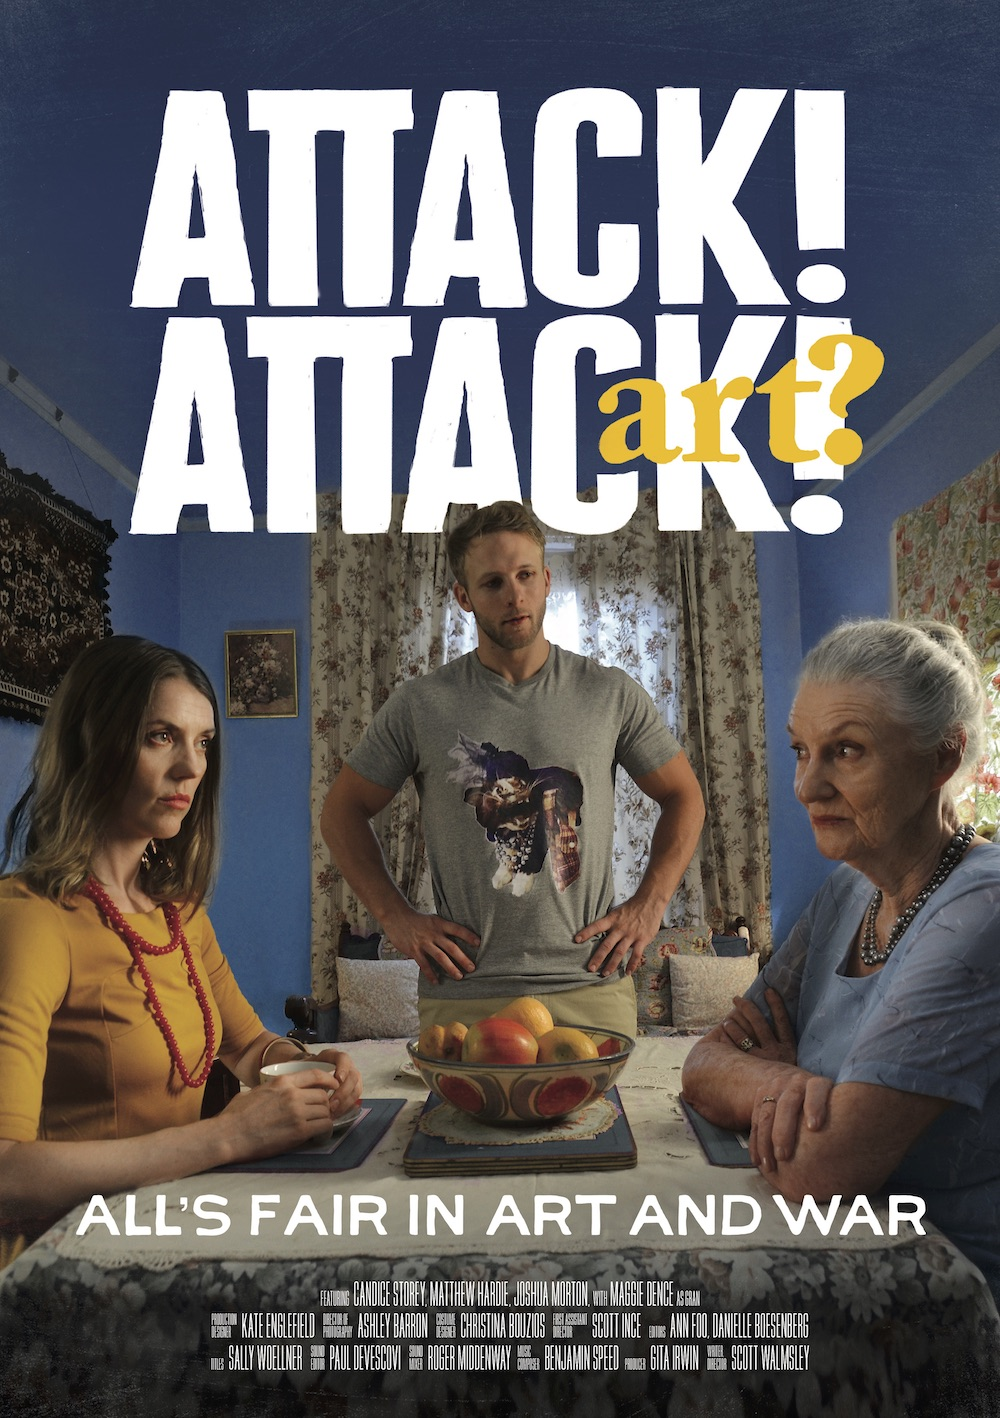 An idealistic artist discovers her diabolical grandmother is stealing her work and selling it online, a war erupts as she goes on the attack to defend her artistic integrity.